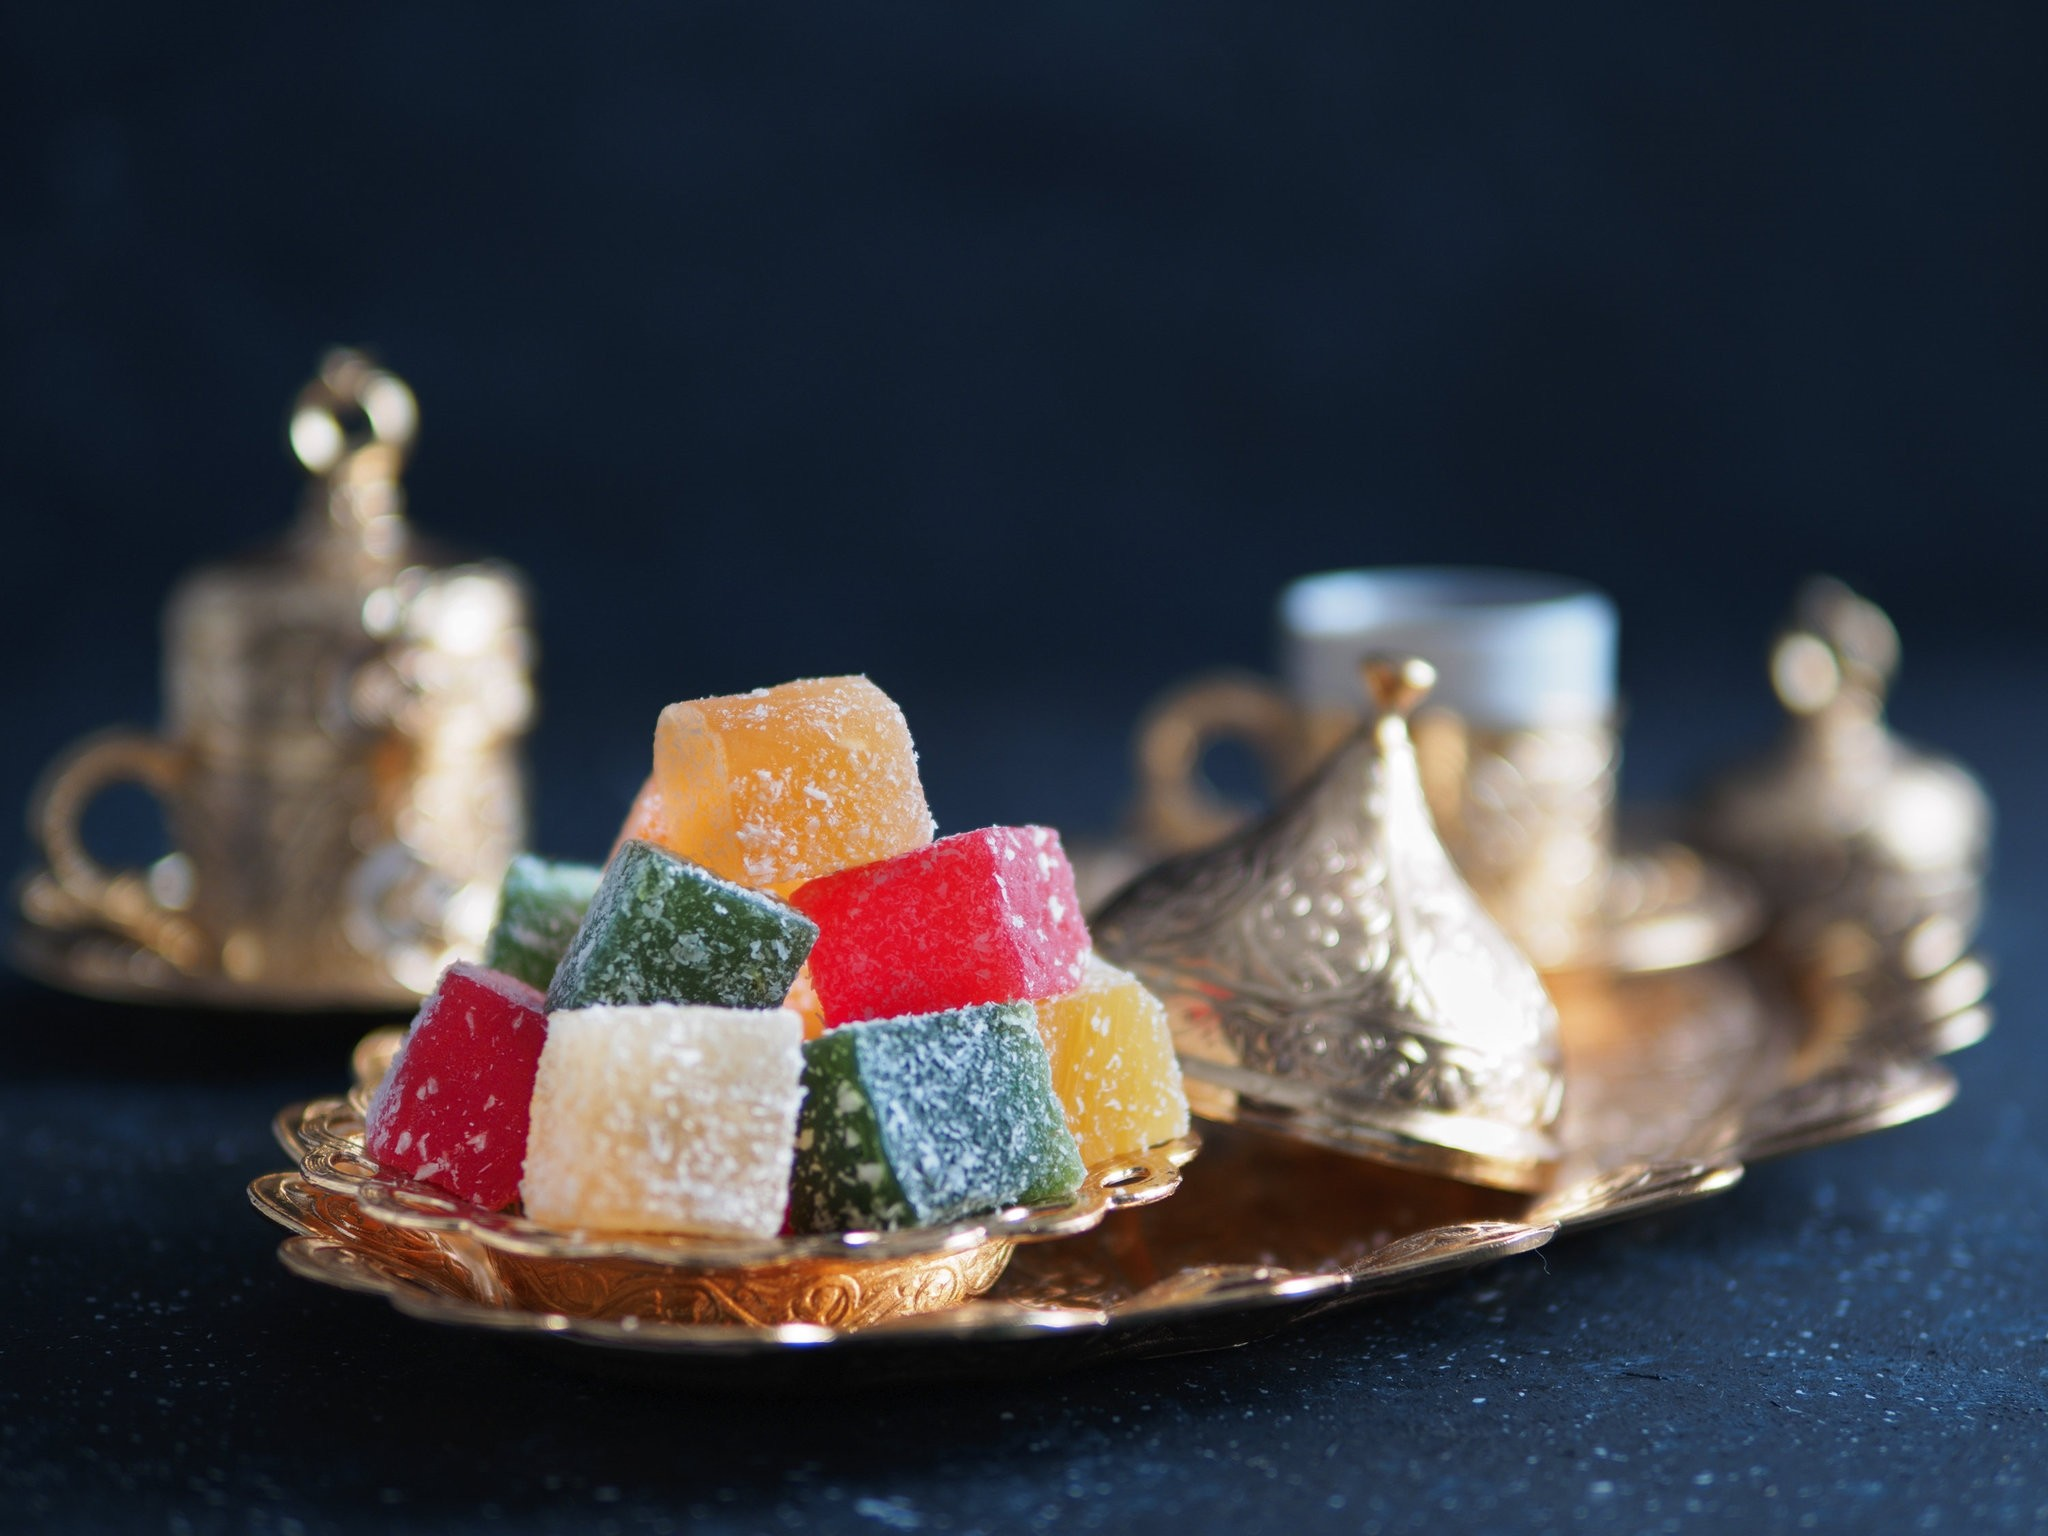 It took lokum (Turkish delight) two centuries to be considered a proper sweet in the Ottoman Empire, but since then it has become a symbol of Turkish culture.